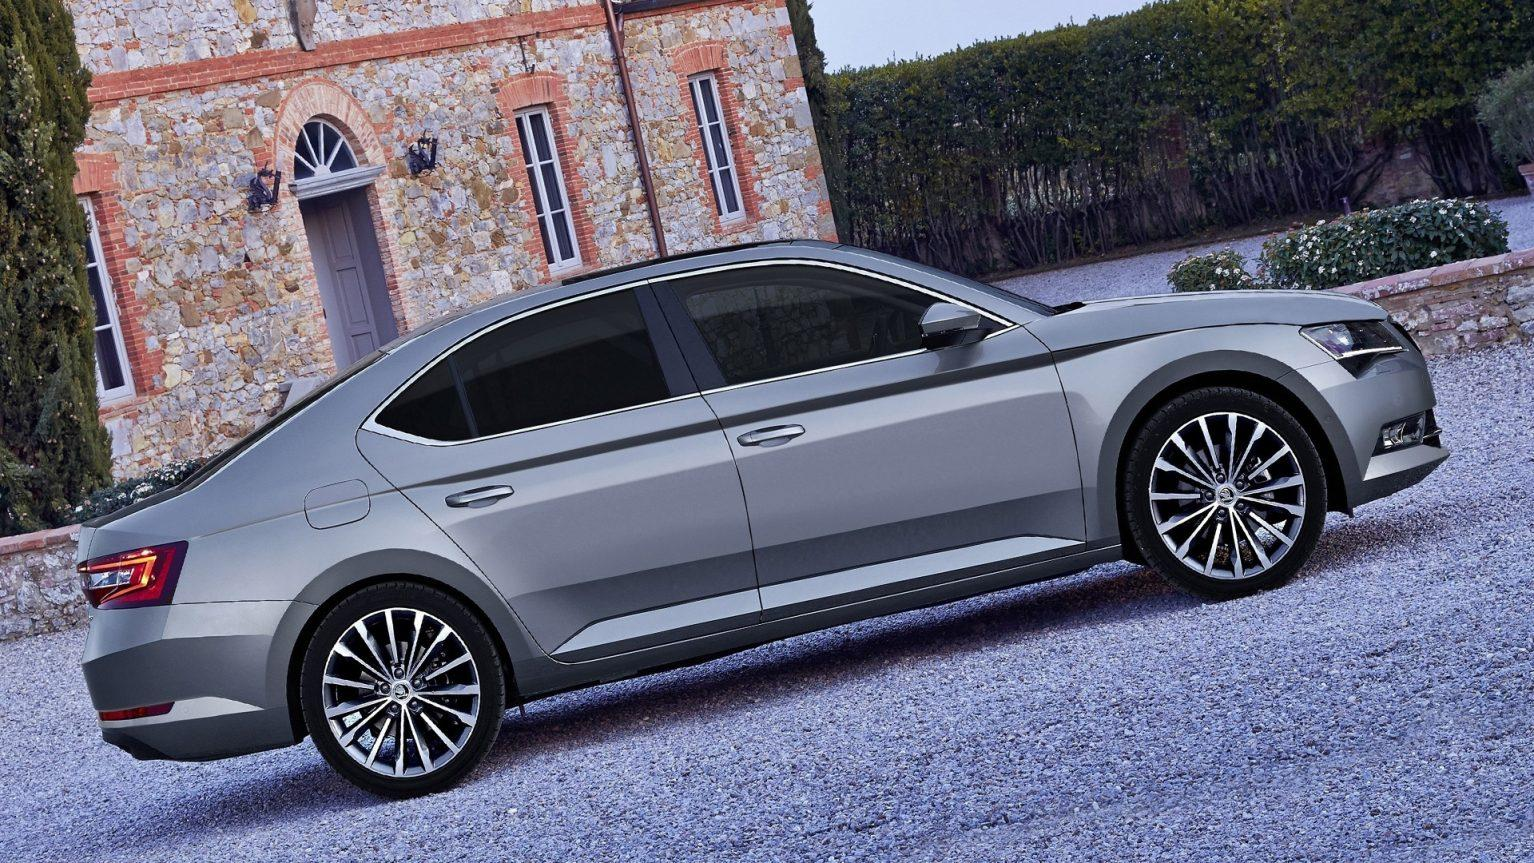 2019 Skoda Superb HD Wallpapers